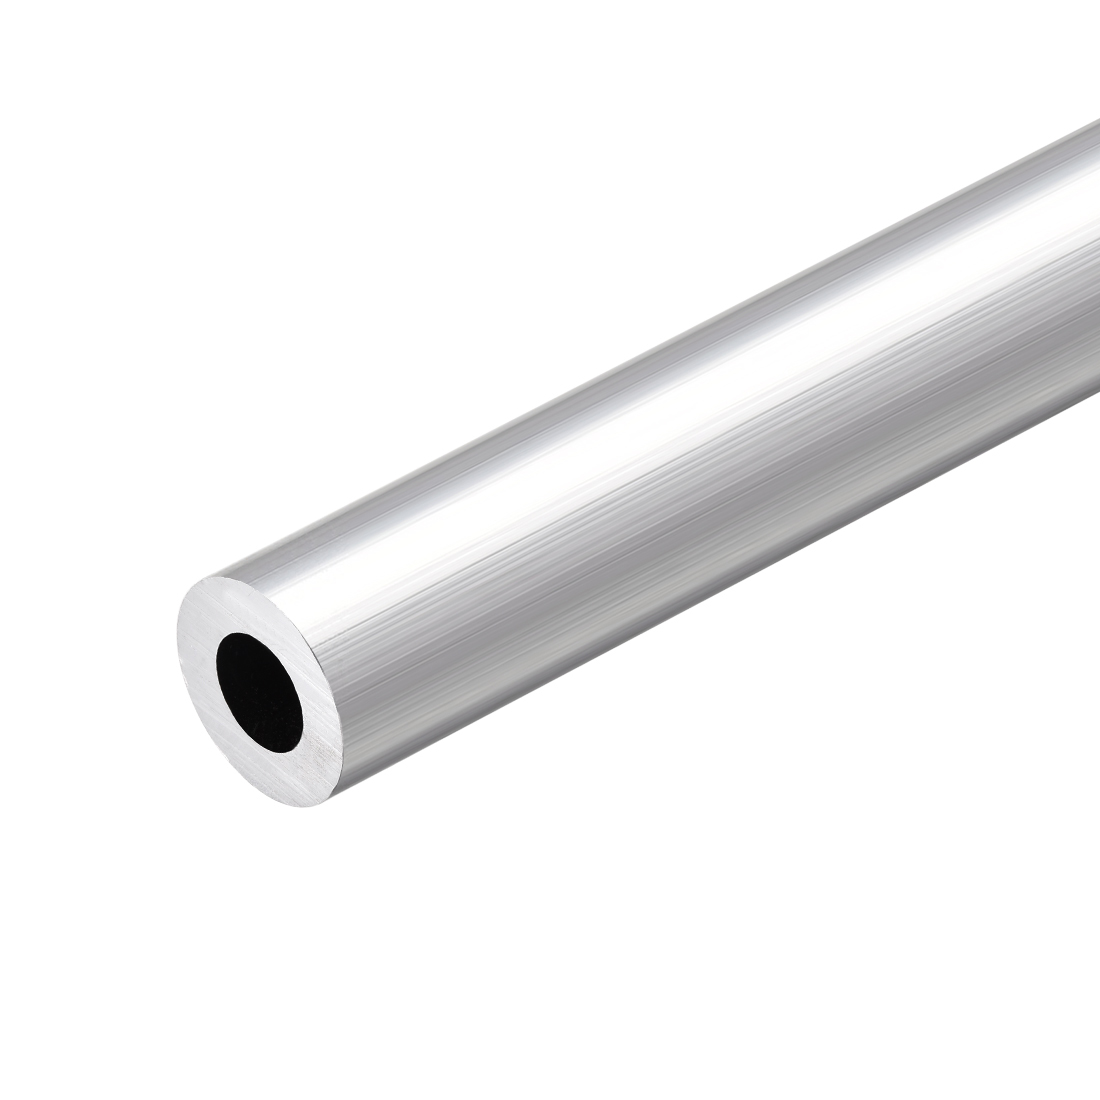 Uxcell Aluminum Round Tube 300mm Length 19mm OD 5.2mm 9mm 10mm 11mm 15mm 16mm Inner Dia Seamless Aluminum Straight Tubing